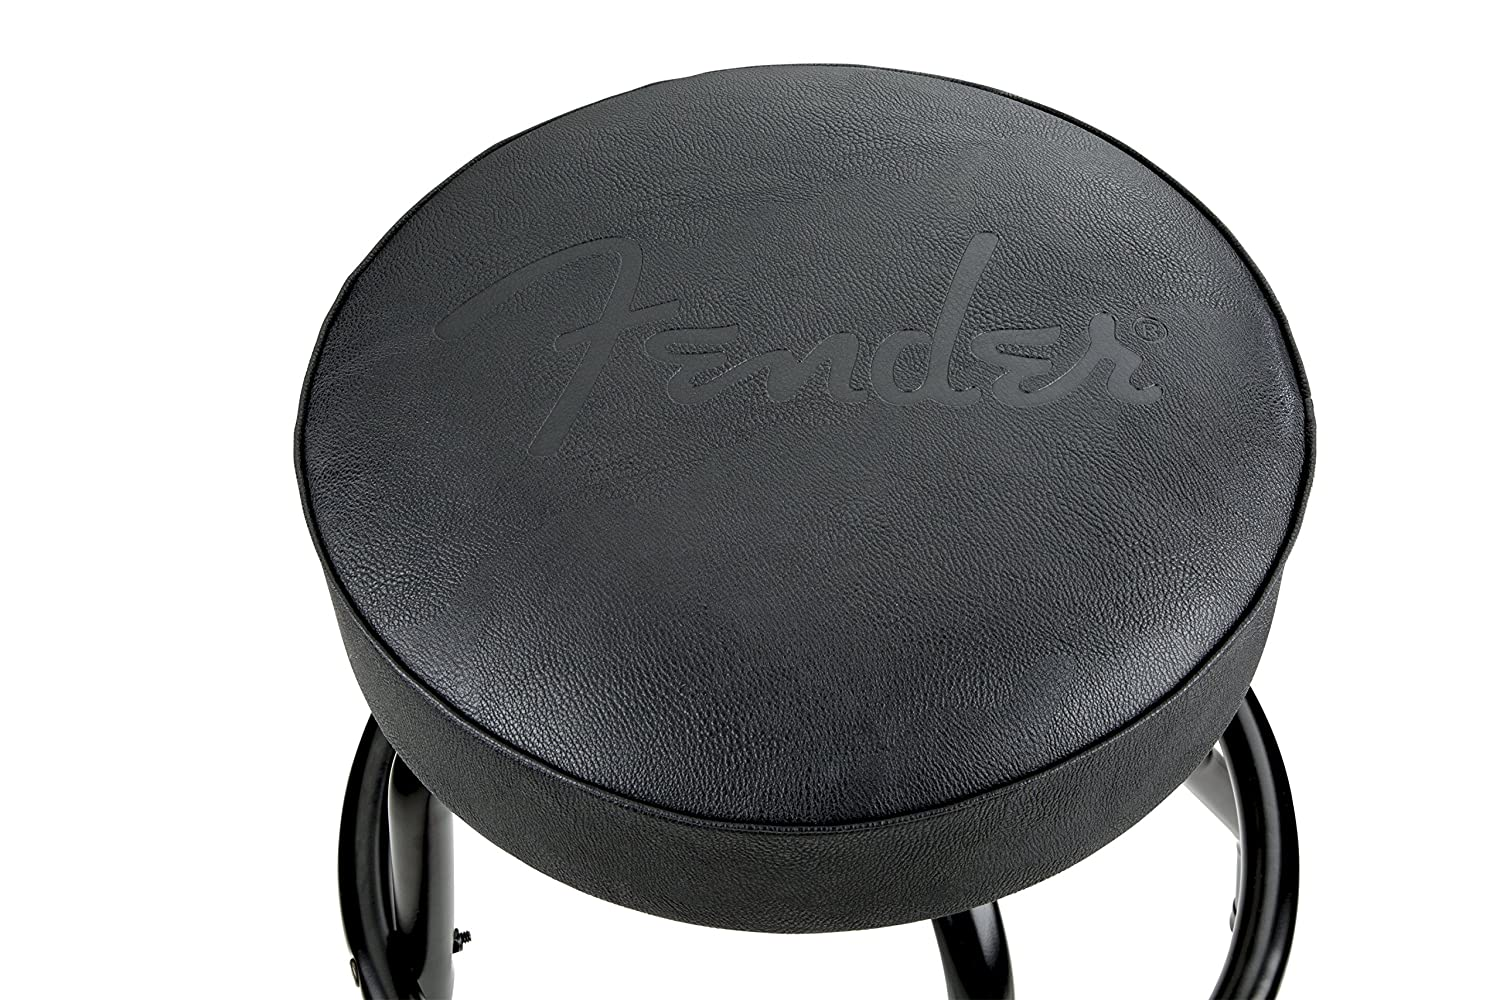 Fender 9100323606 sgabello da bar blackout altezza 76 2 cm: amazon